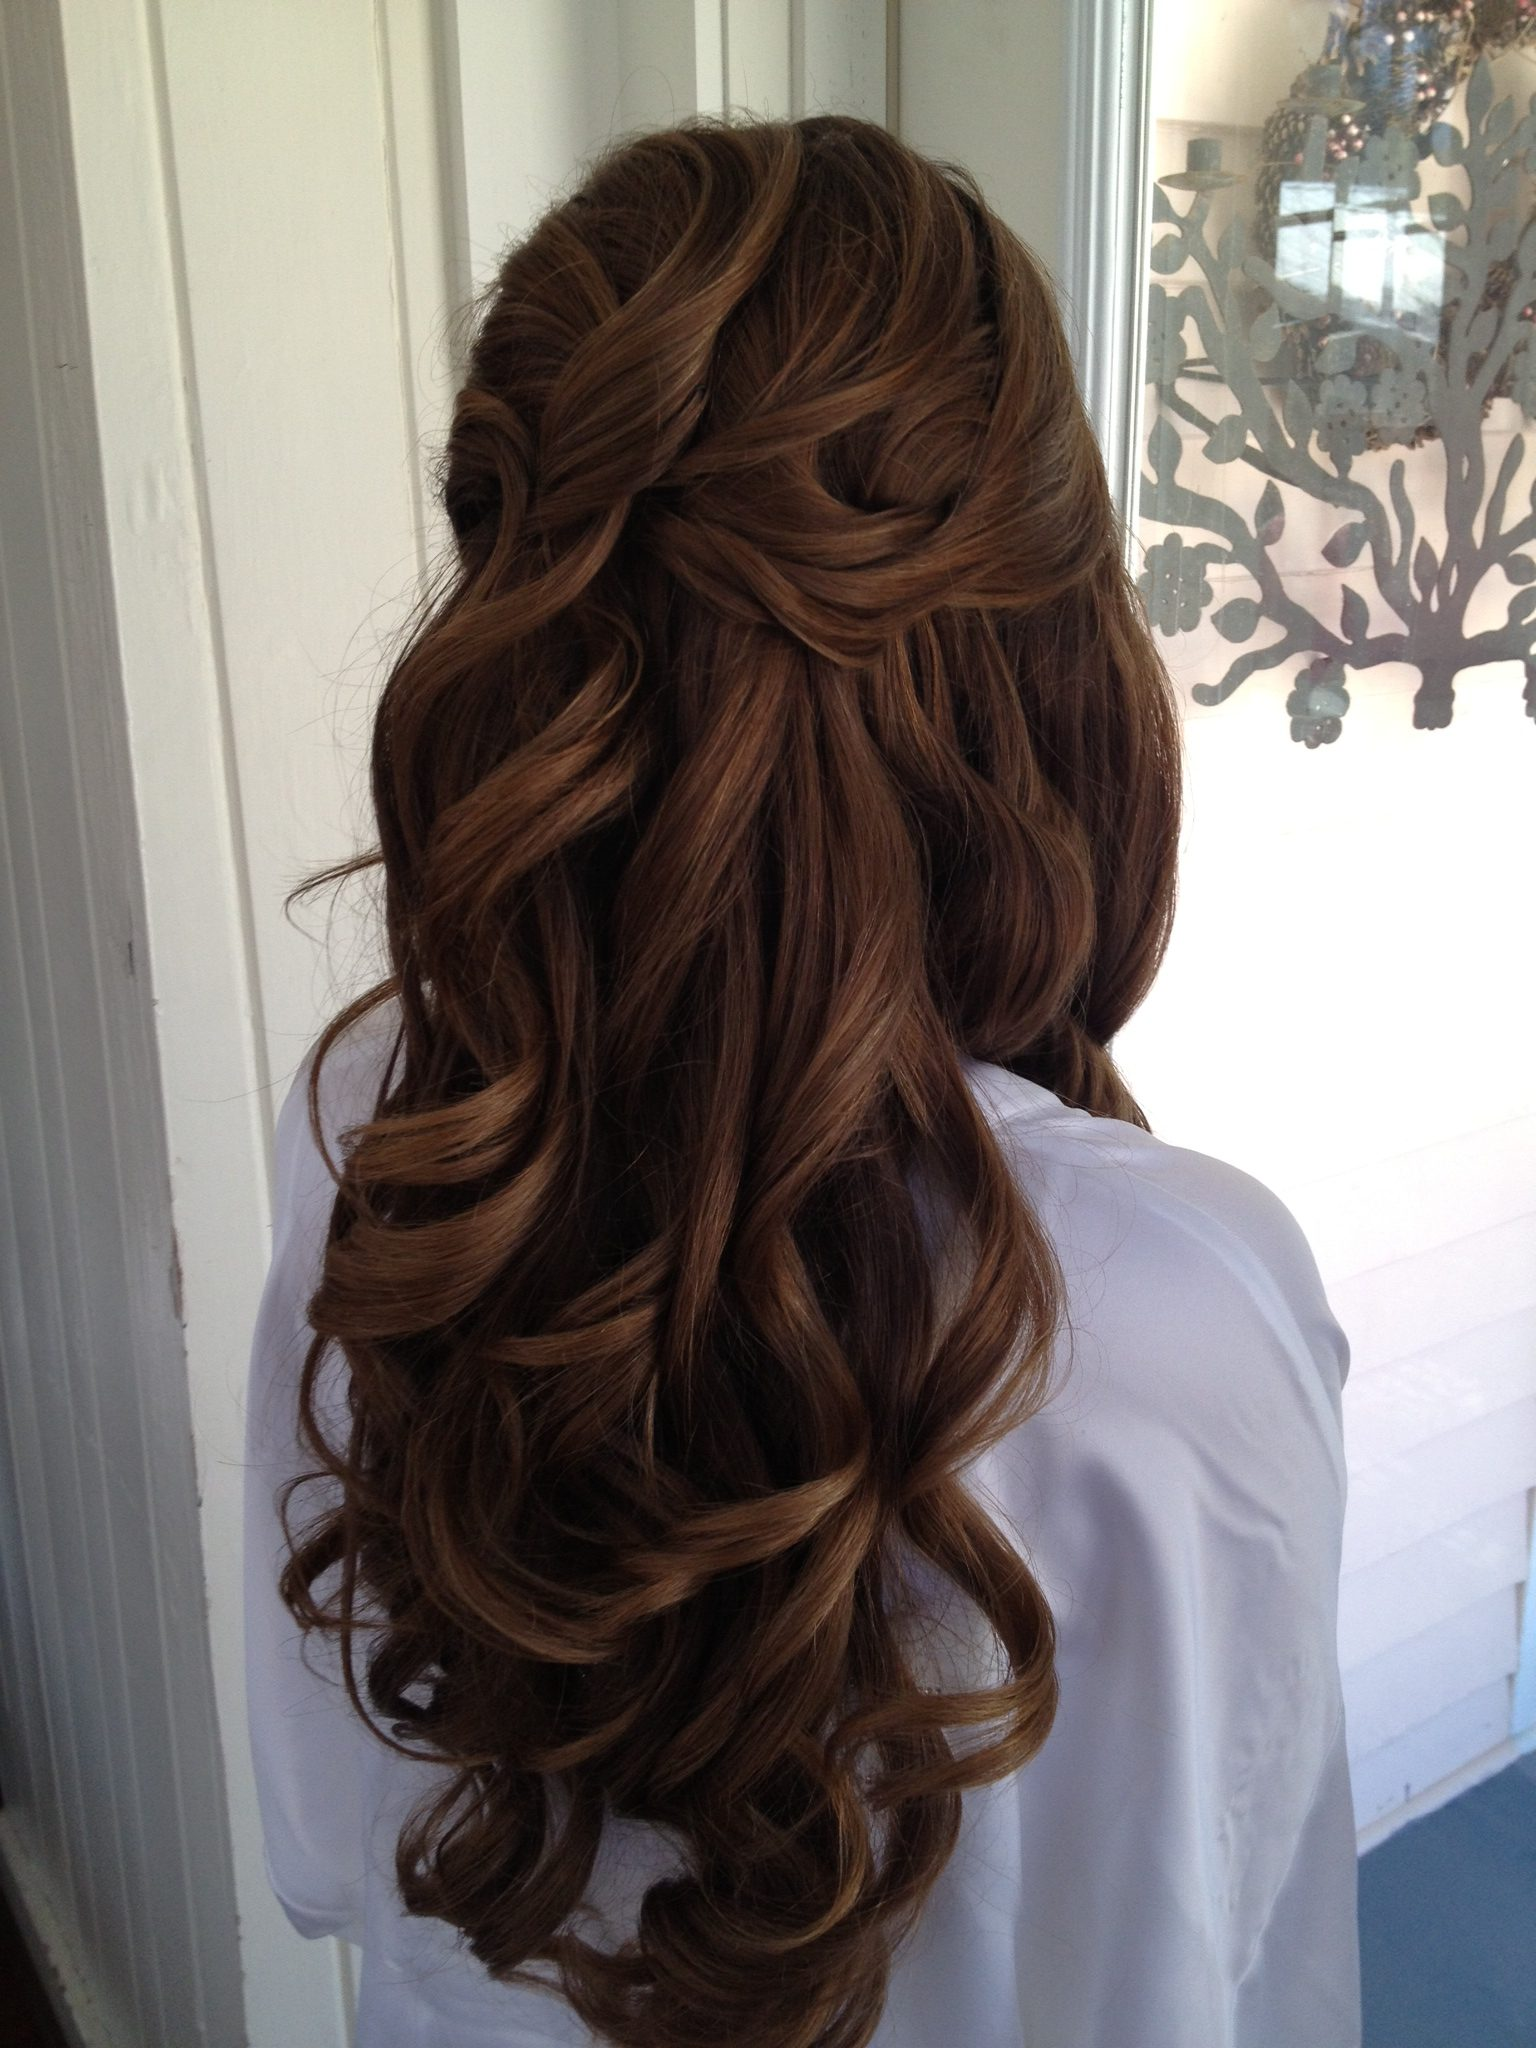 hair-salon-jacksonville-wedding-hairstyles-18